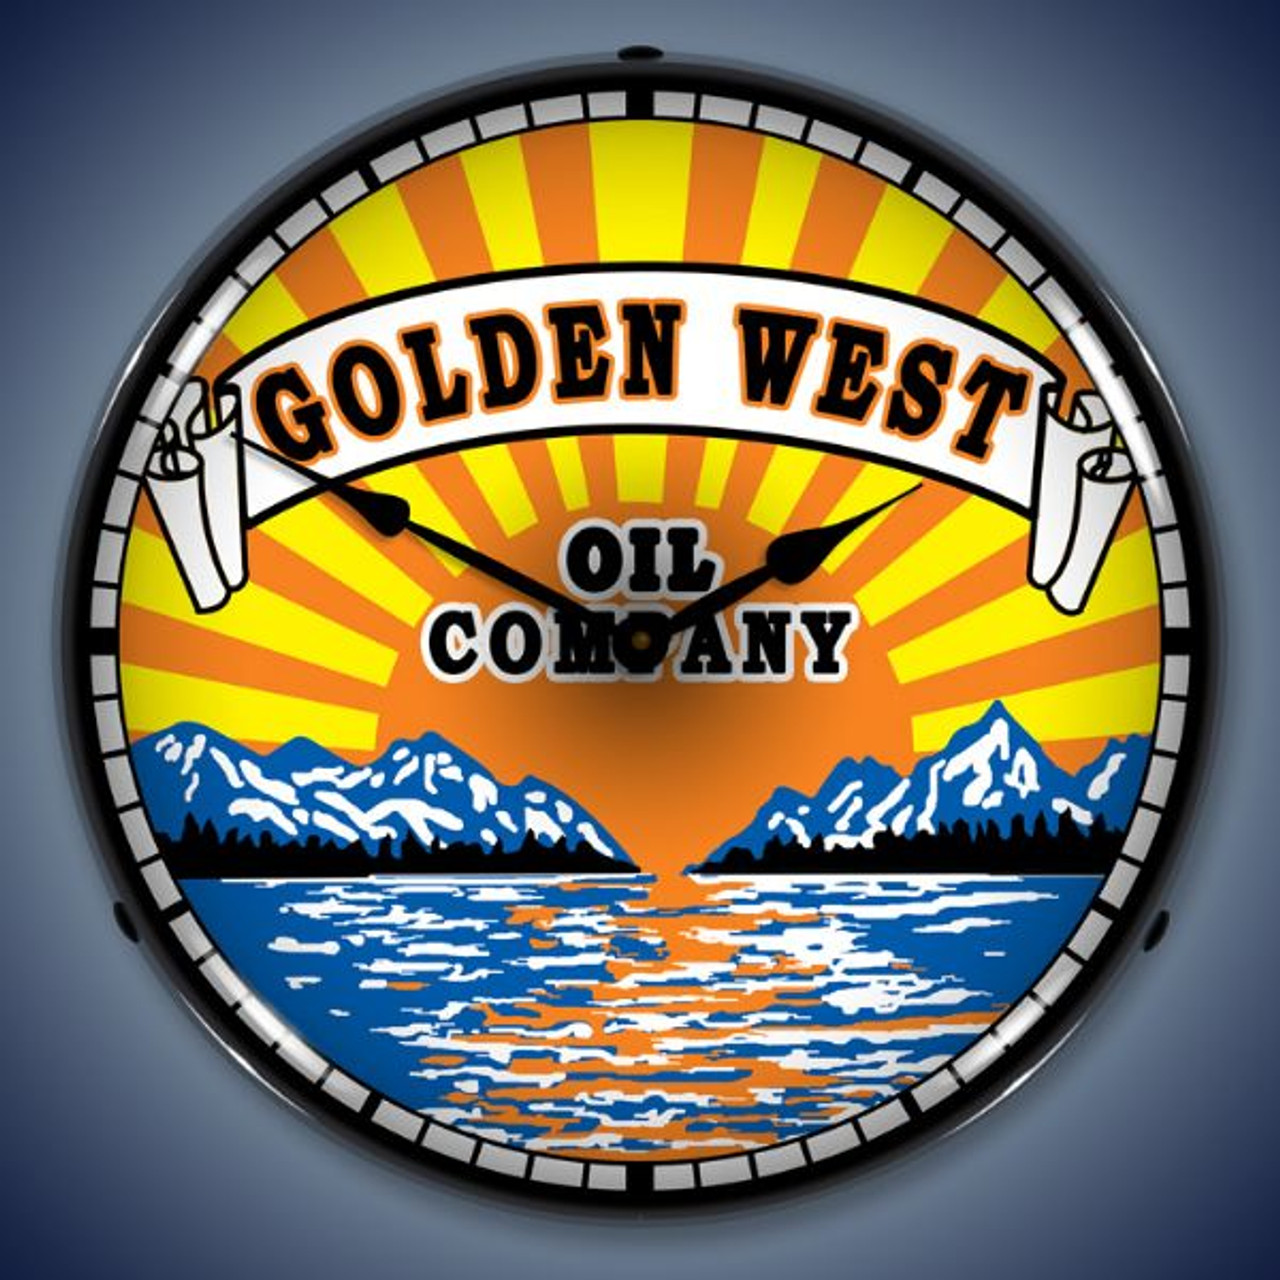 Retro  Golden West Lighted Wall Clock 14 x 14 Inches